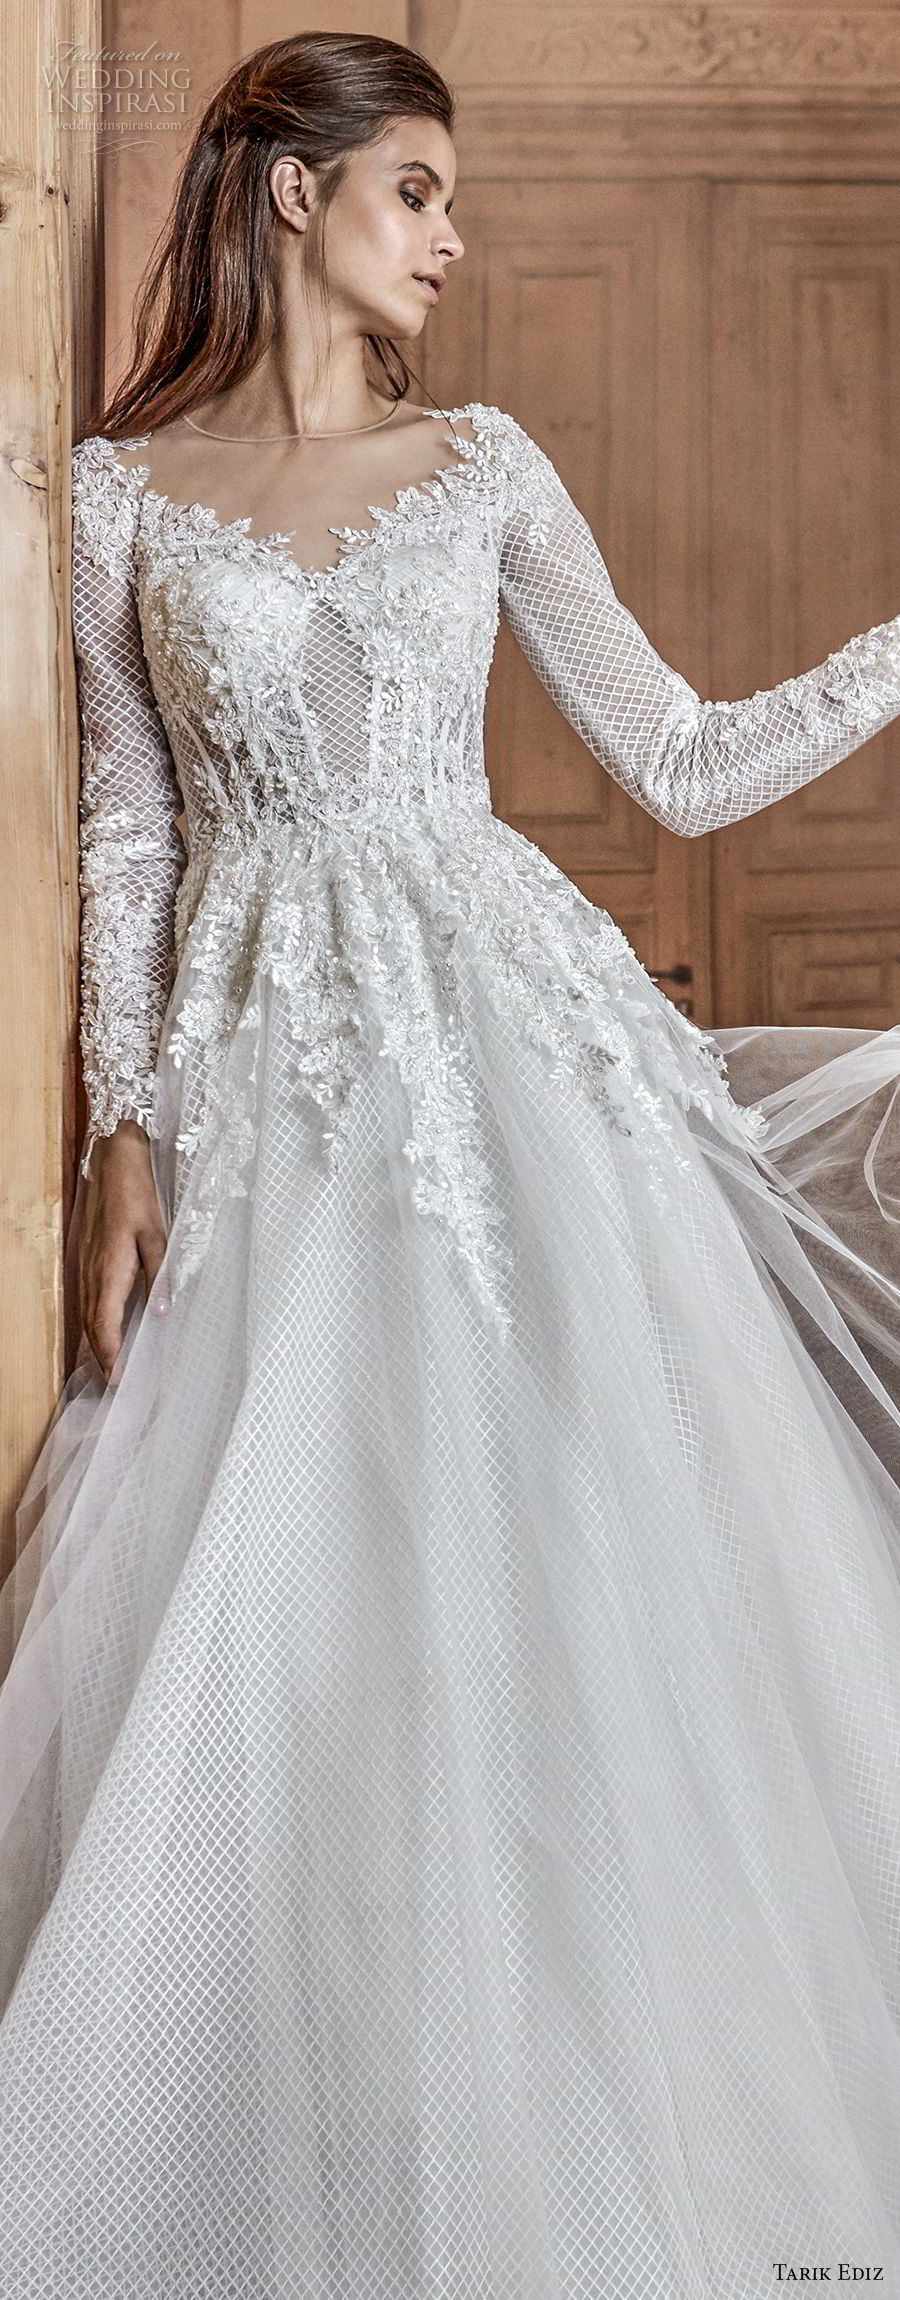 tarik ediz 2017 bridal long sleeves illusion jewel neck heavily embellished bodice romantic a line wedding dress (4) zv